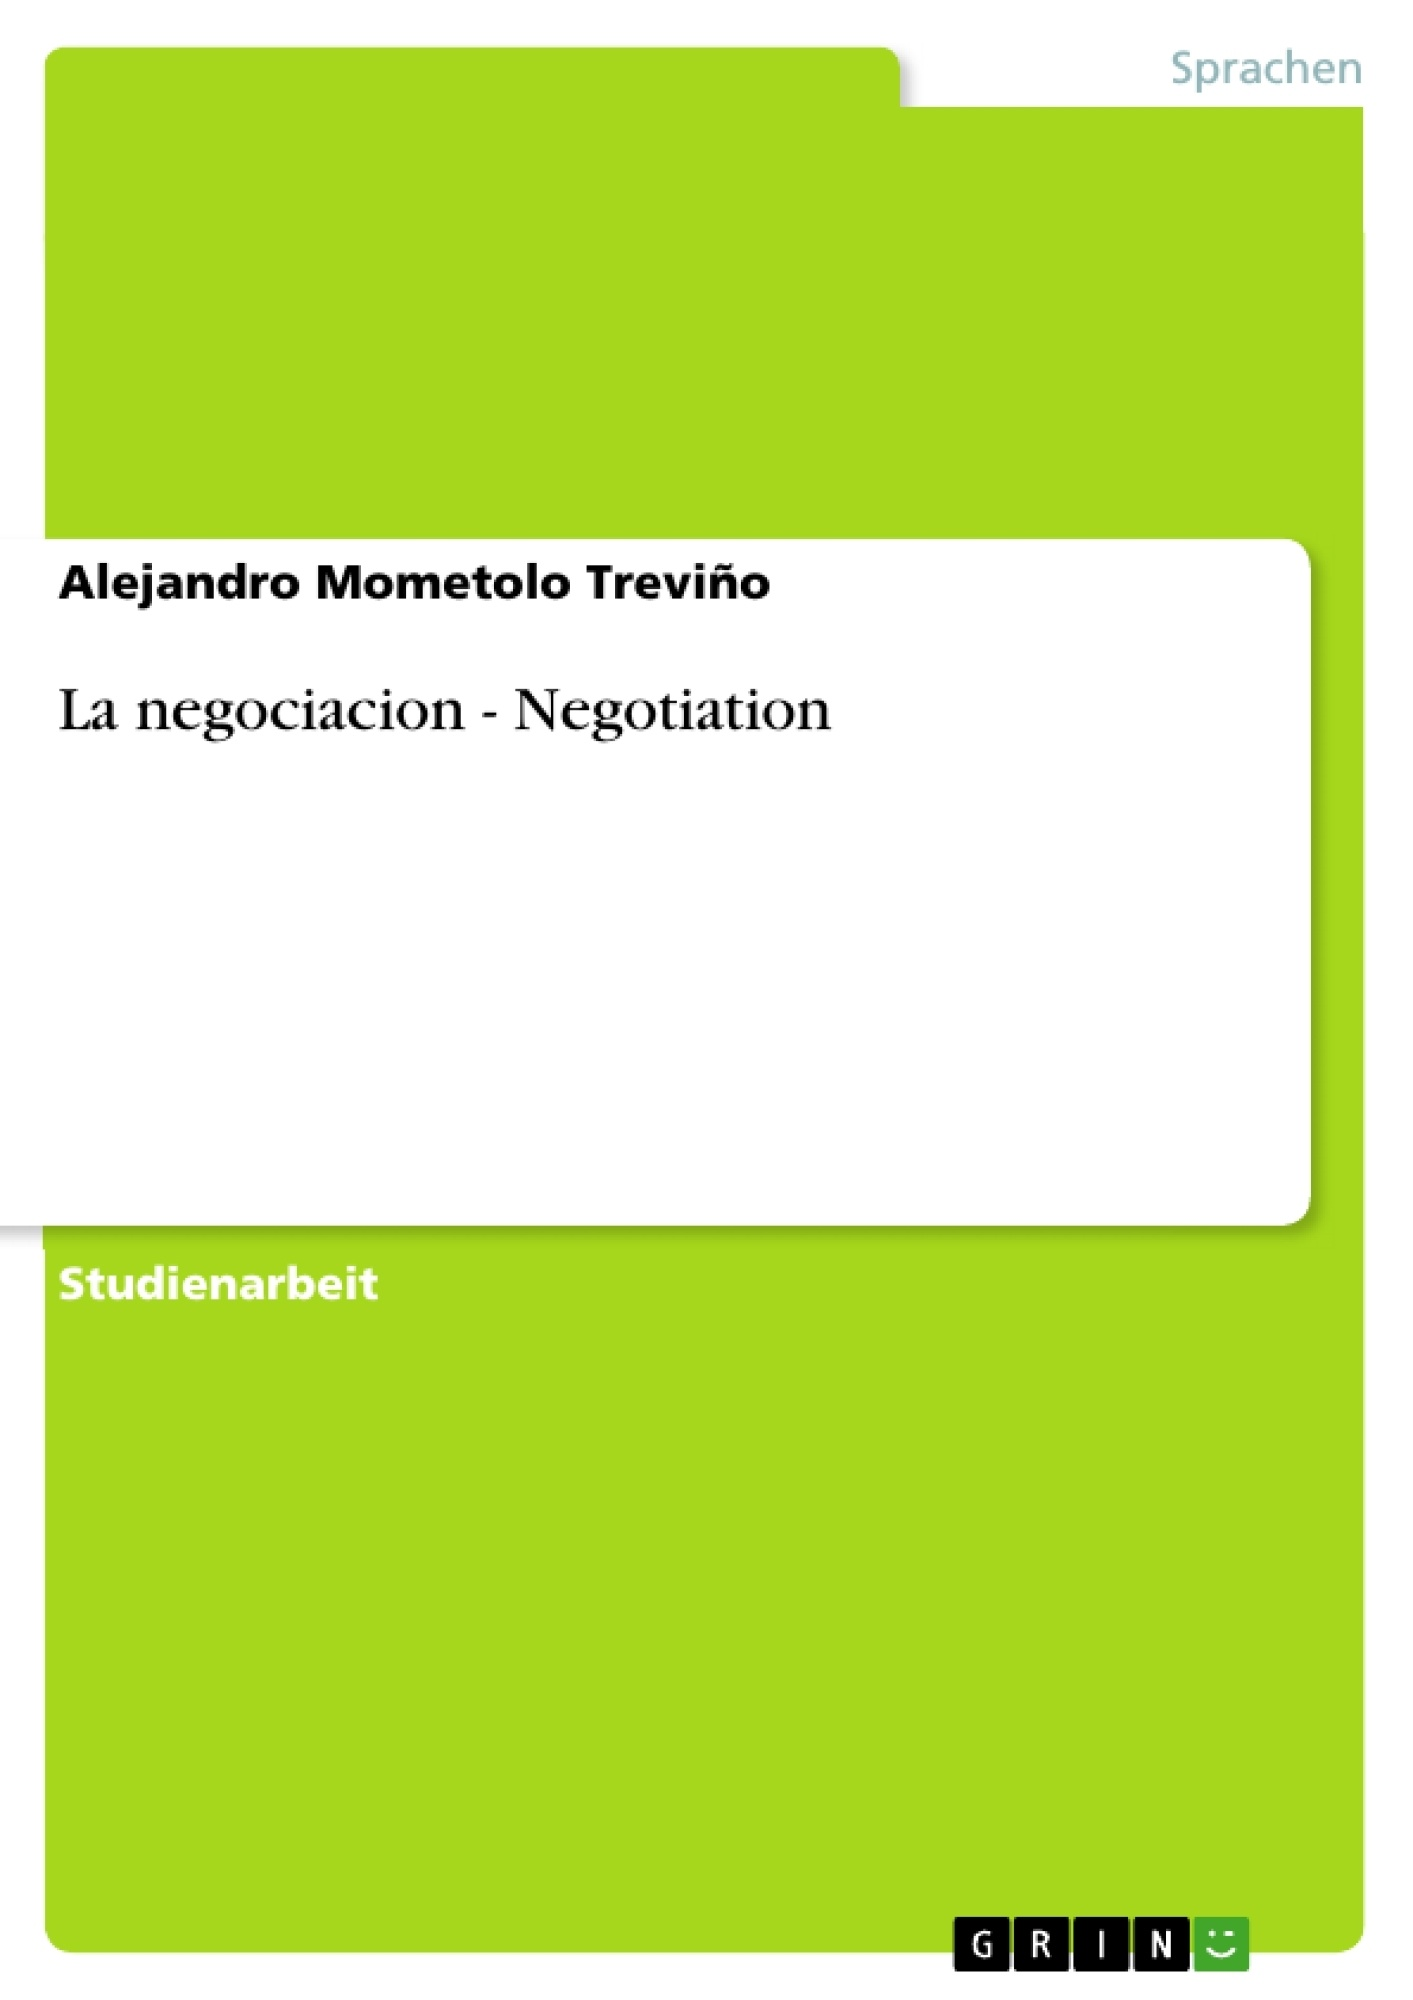 Titel: La negociacion - Negotiation